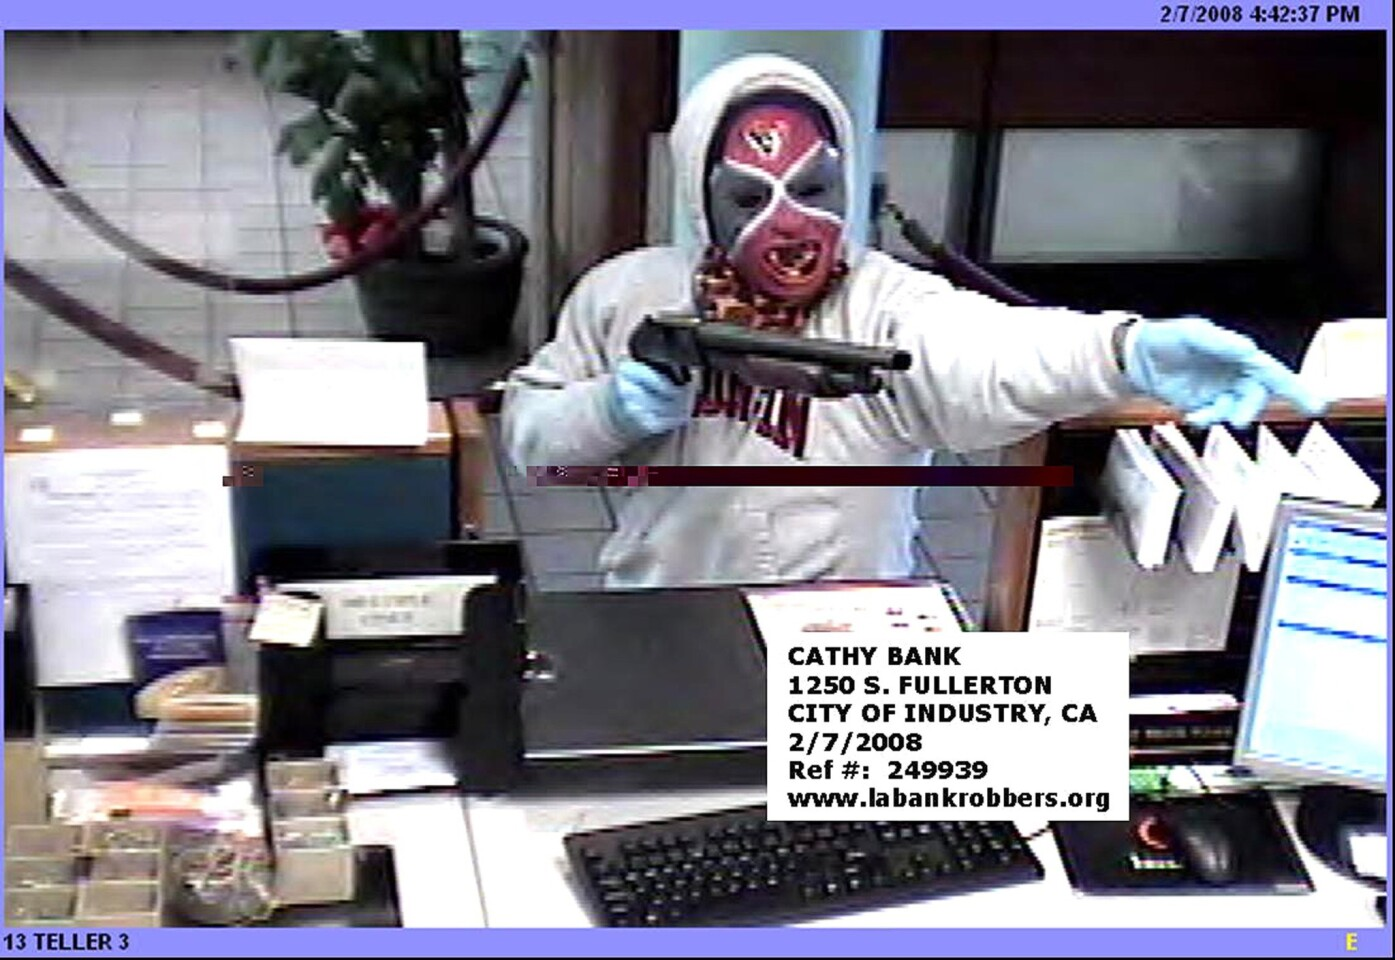 A surveillance photo of one of the WWF Shotgun Bandits during a robbery in the city of Industry in February 2008.